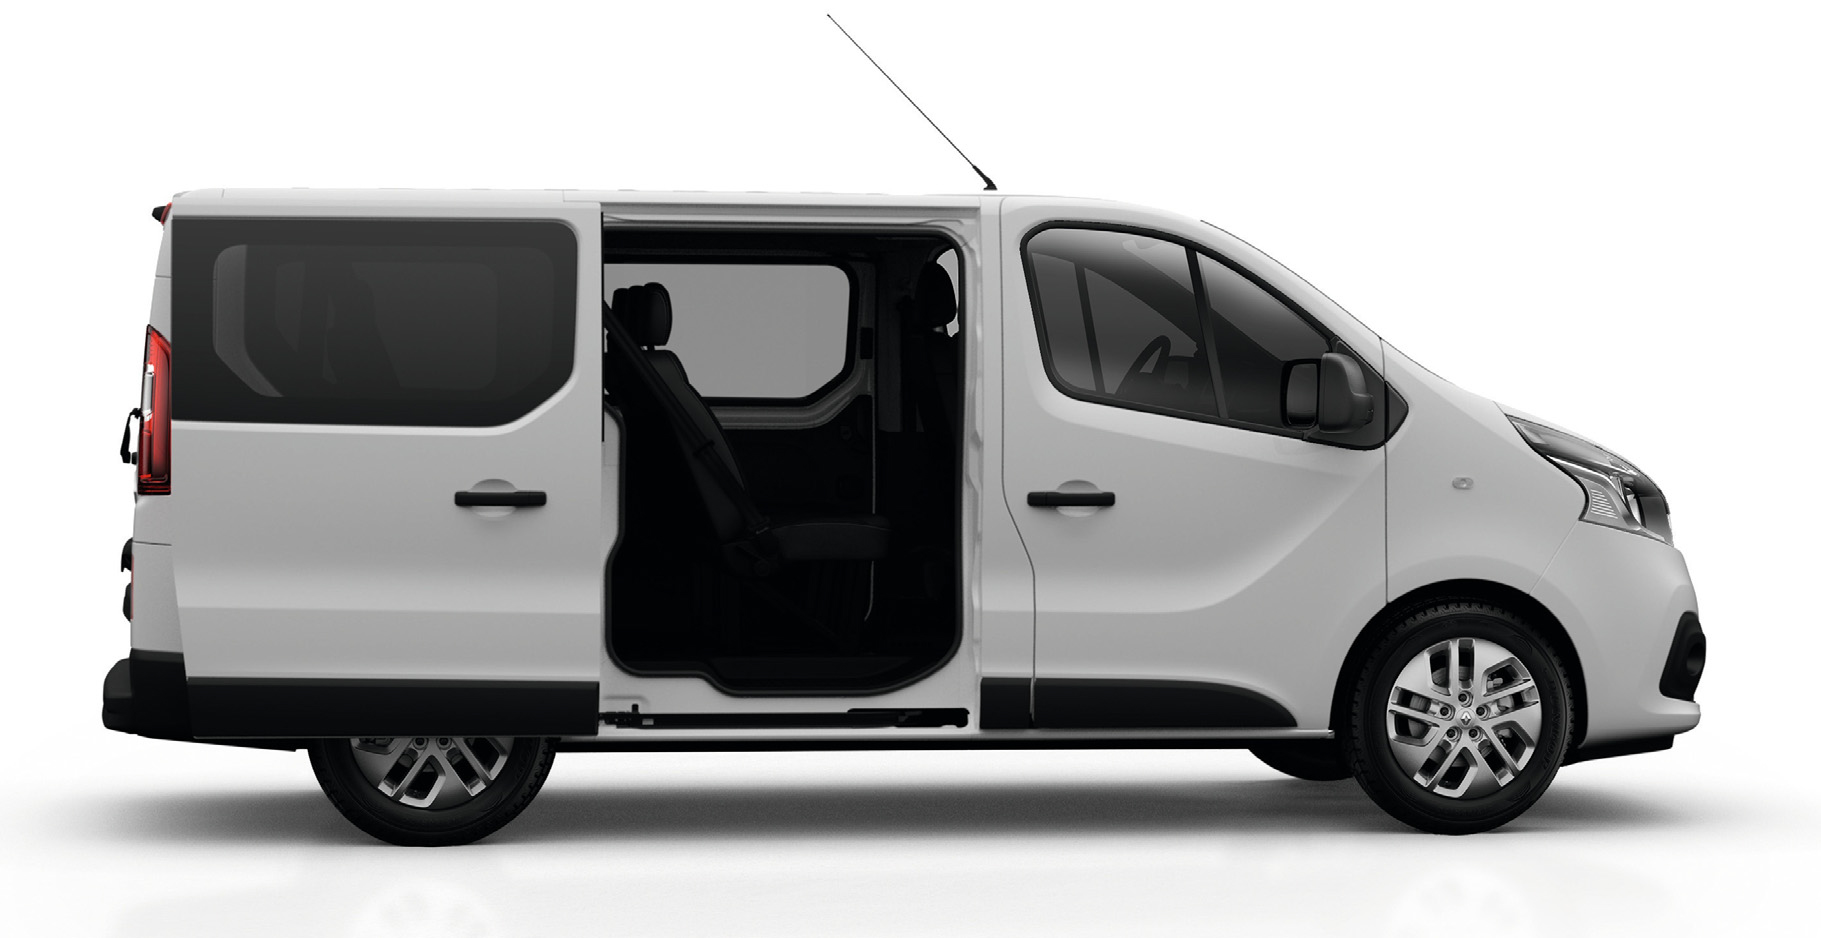 nouveau renault trafic renault maintenon. Black Bedroom Furniture Sets. Home Design Ideas